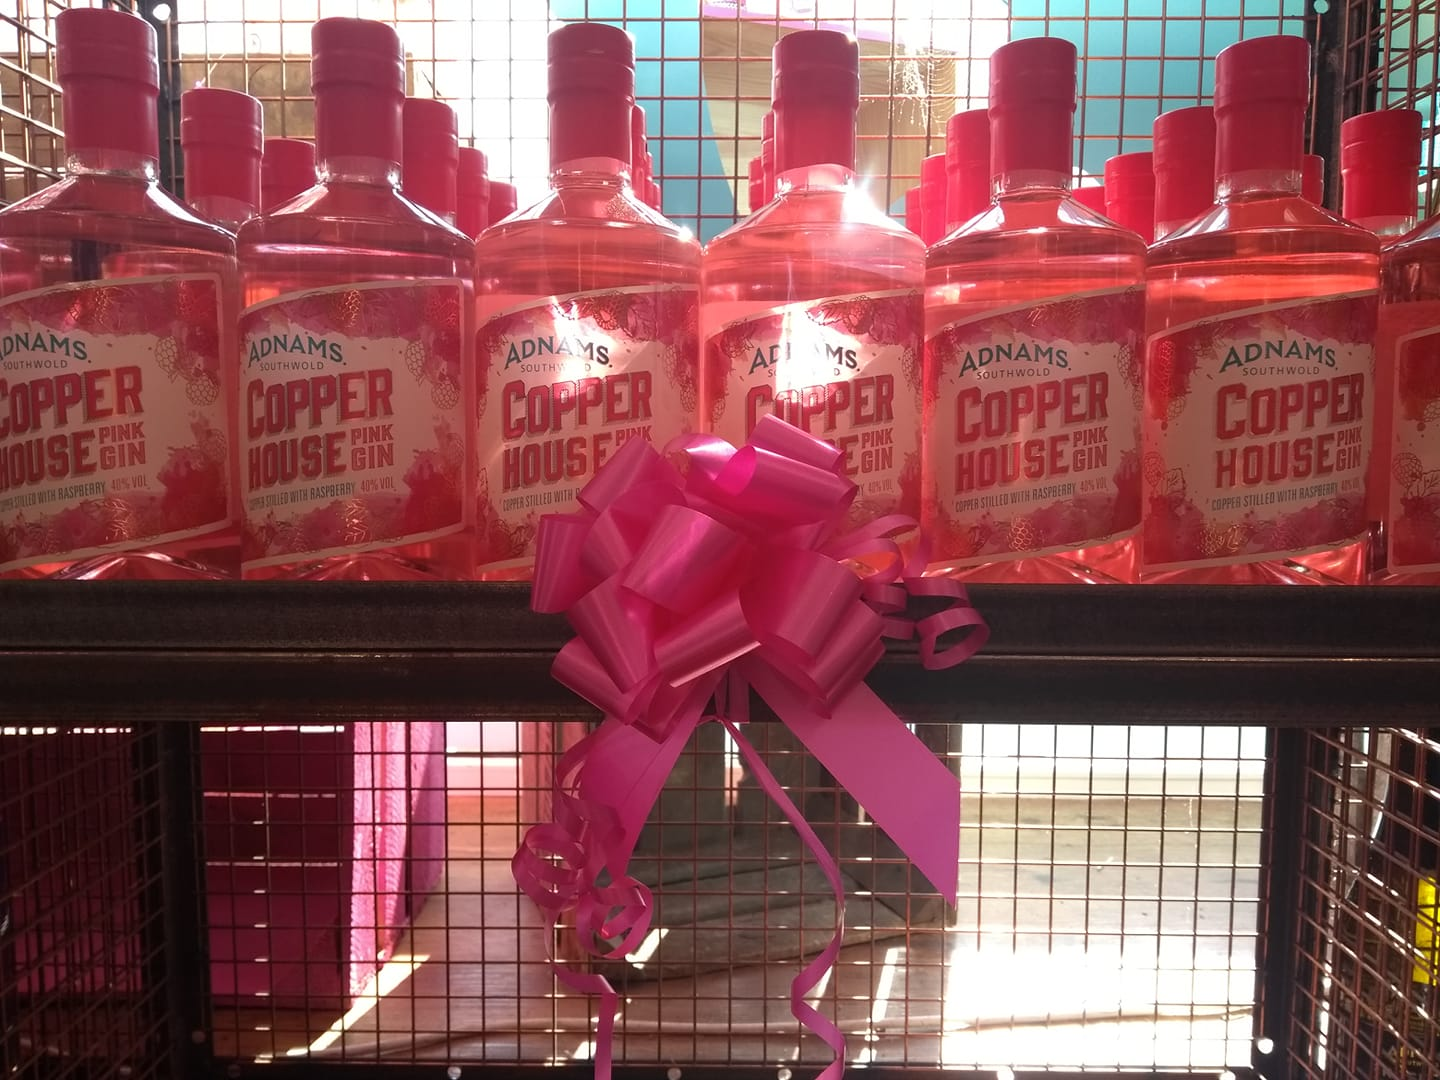 Copper House Pink Gin joins the Adnams range